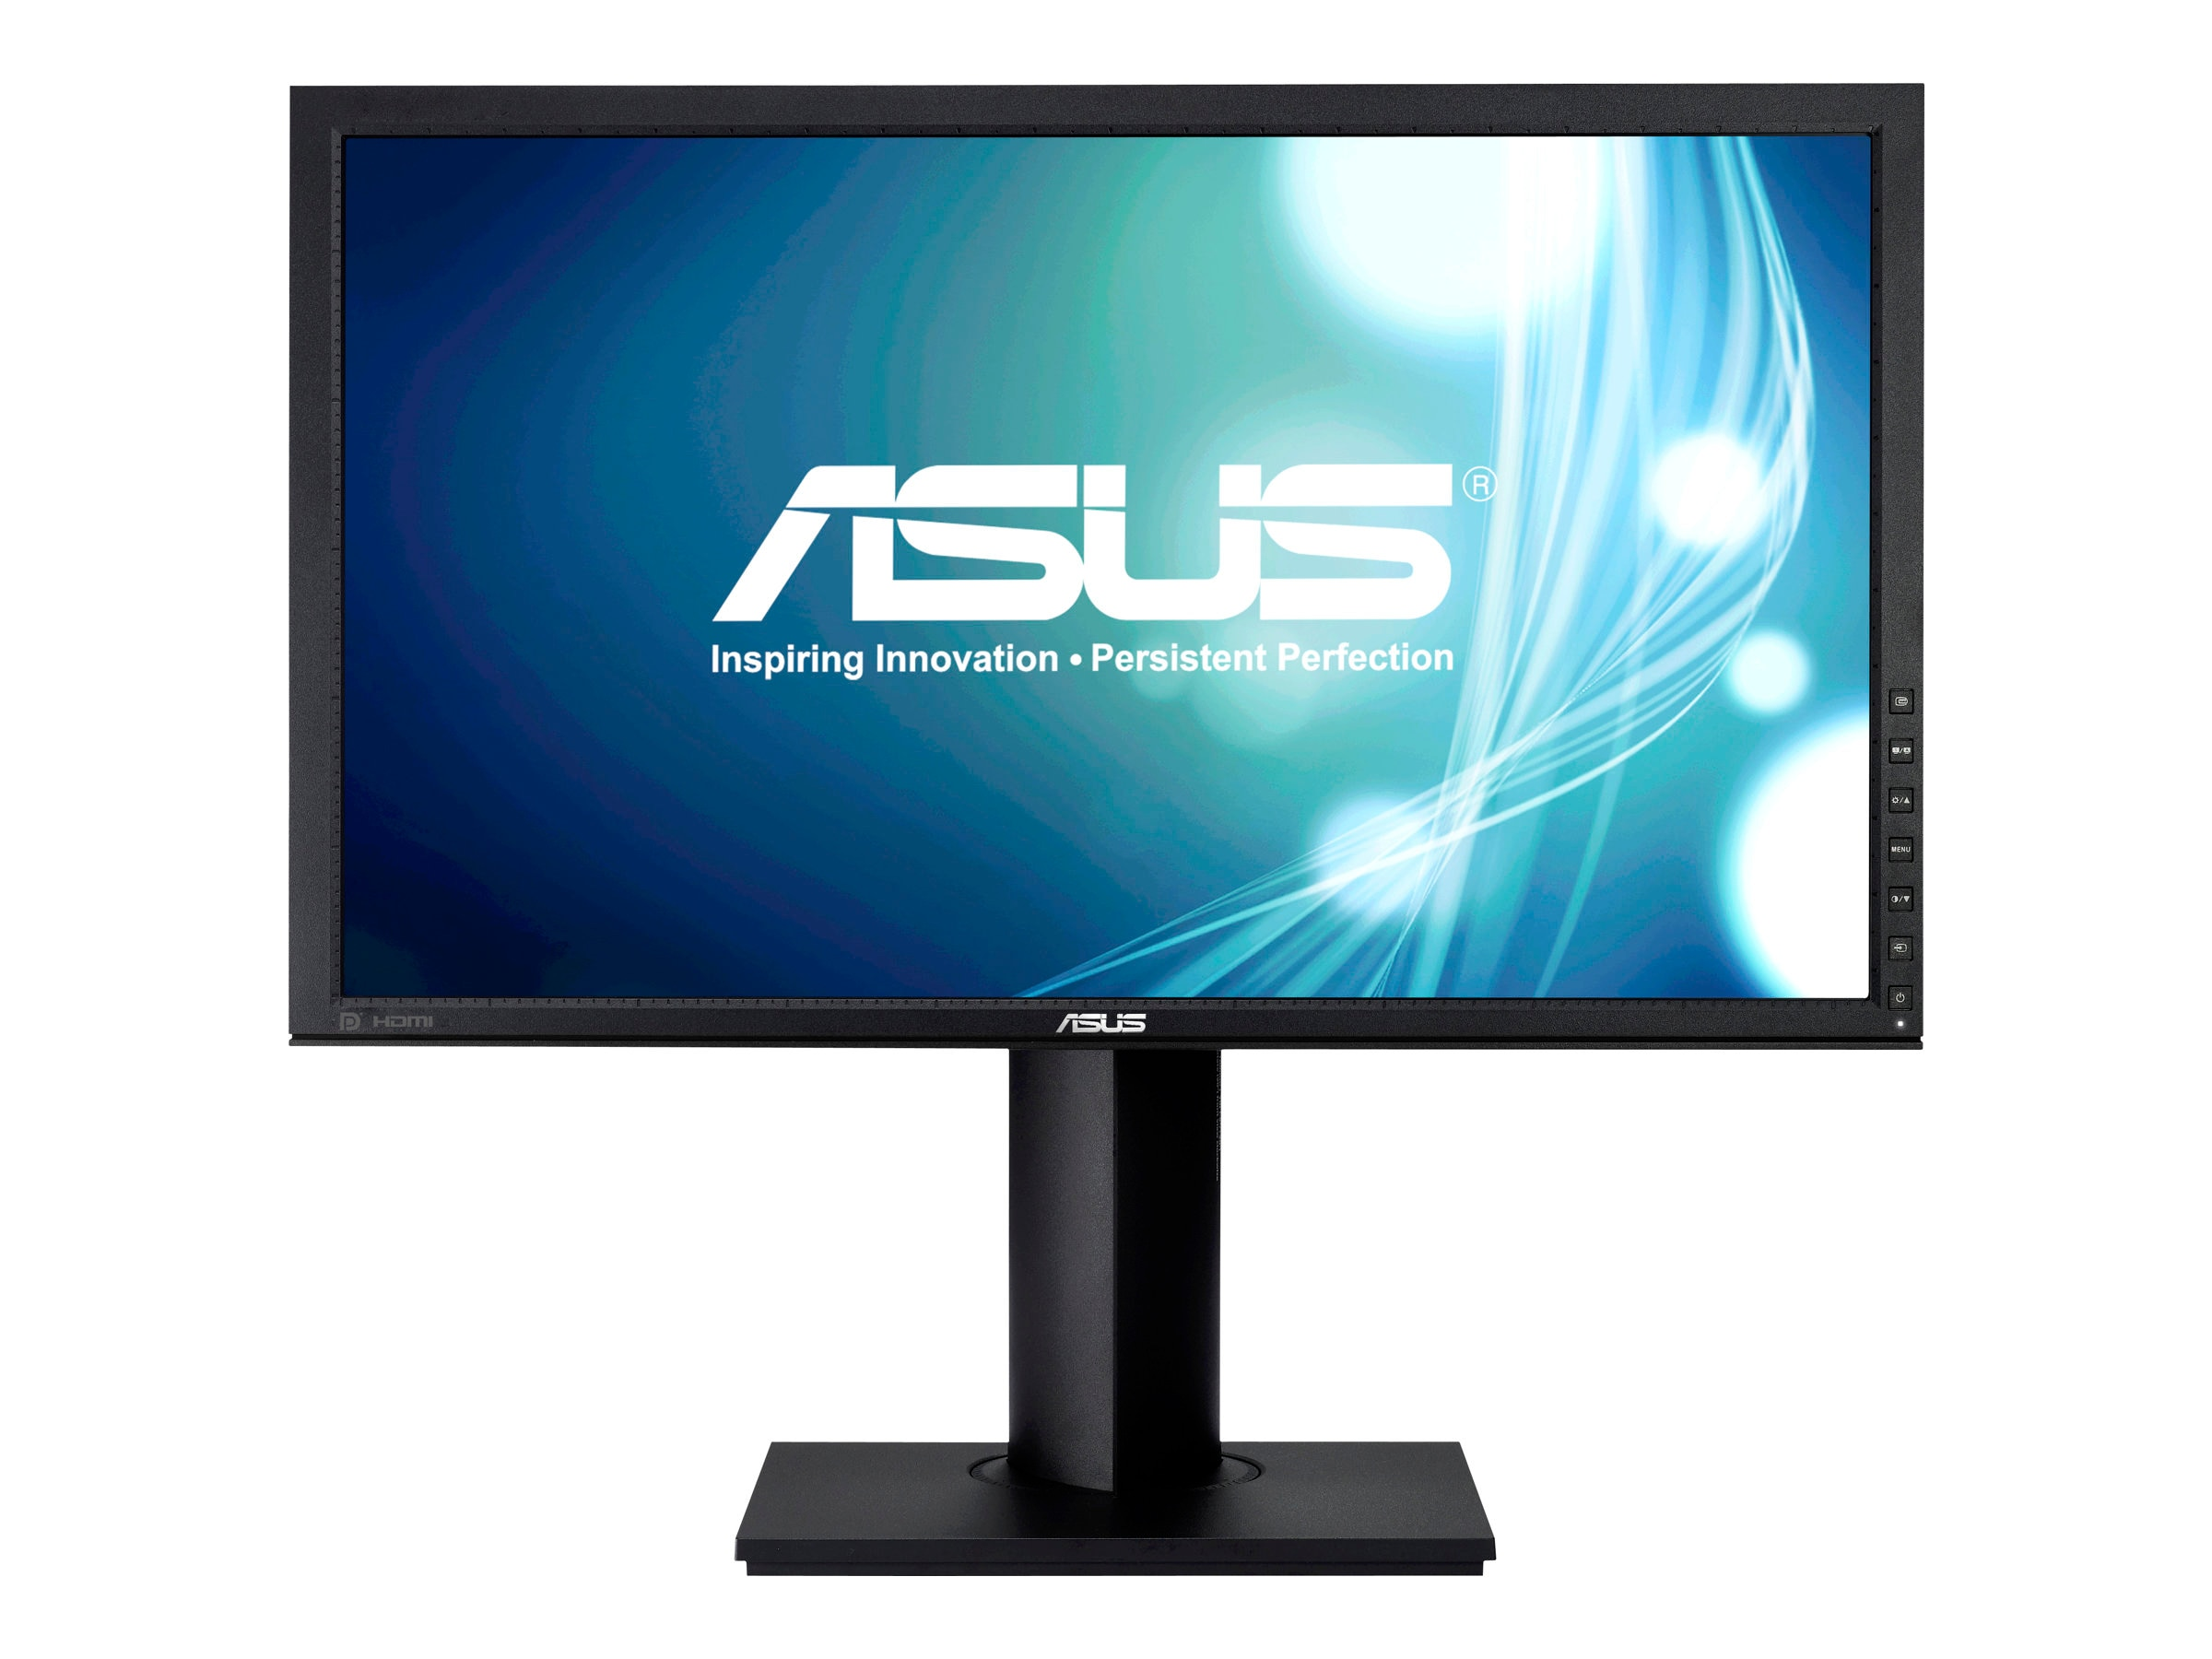 Asus 23 PB238Q Full HD LED-LCD Monitor, Black, PB238Q, 14661900, Monitors - LED-LCD